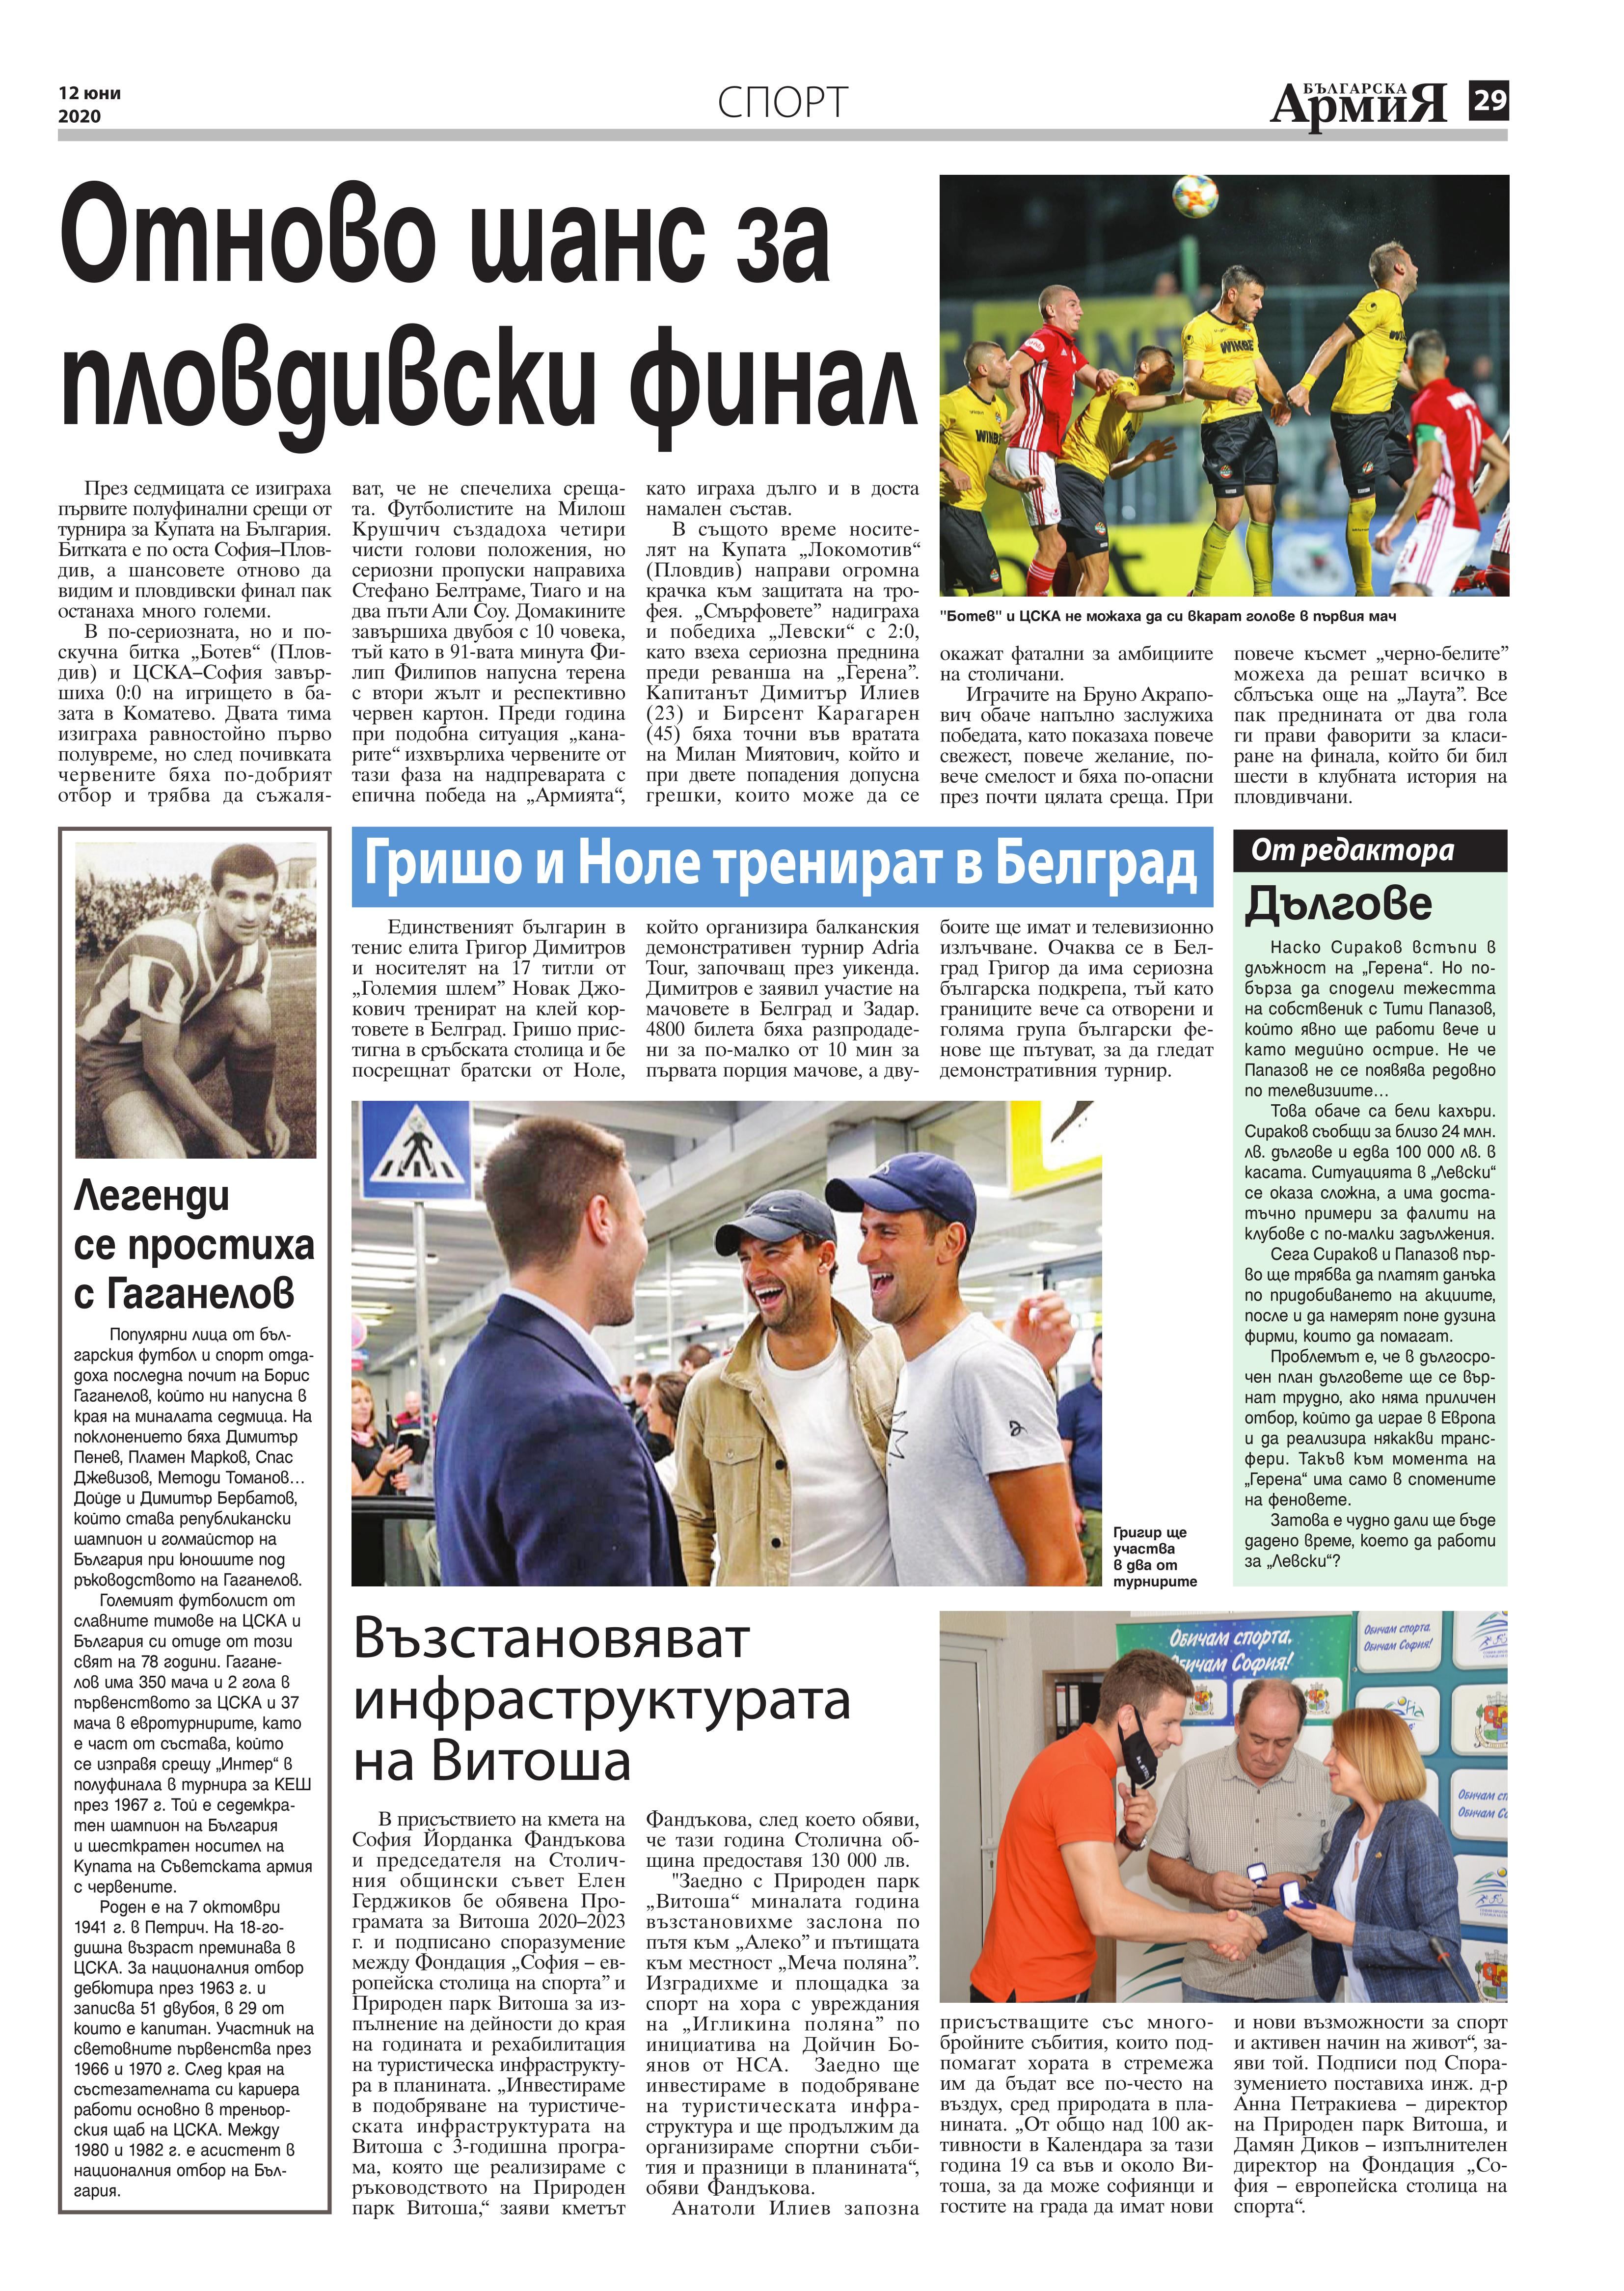 https://www.armymedia.bg/wp-content/uploads/2015/06/29.page1_-115.jpg